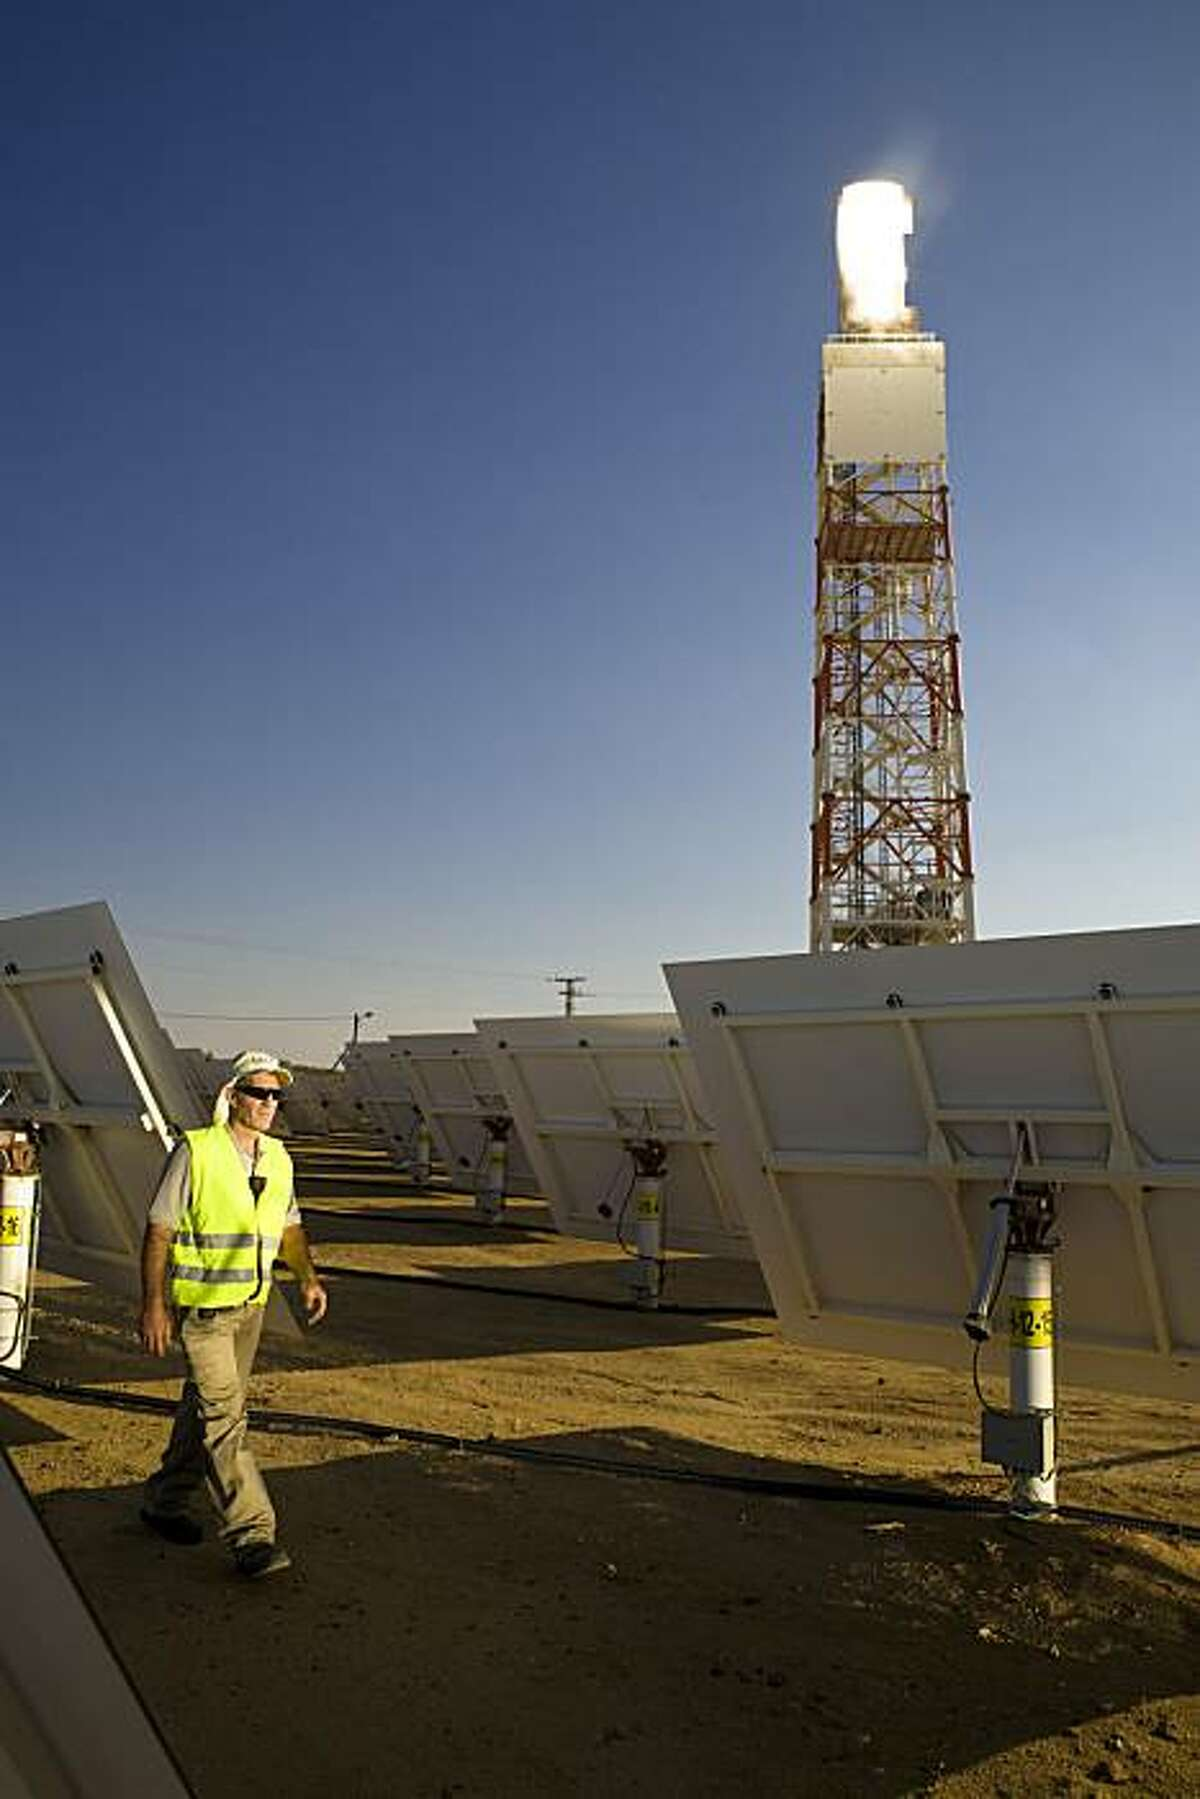 BrightSource Energy's first 100 MW commercial plant in the Mojave Desert will consist of approximately 50,000 heliostats. BrightSource Energy?•s first 100 MW commercial plant in the Mojave Desert will consist of approximately 50,000 heliostats.